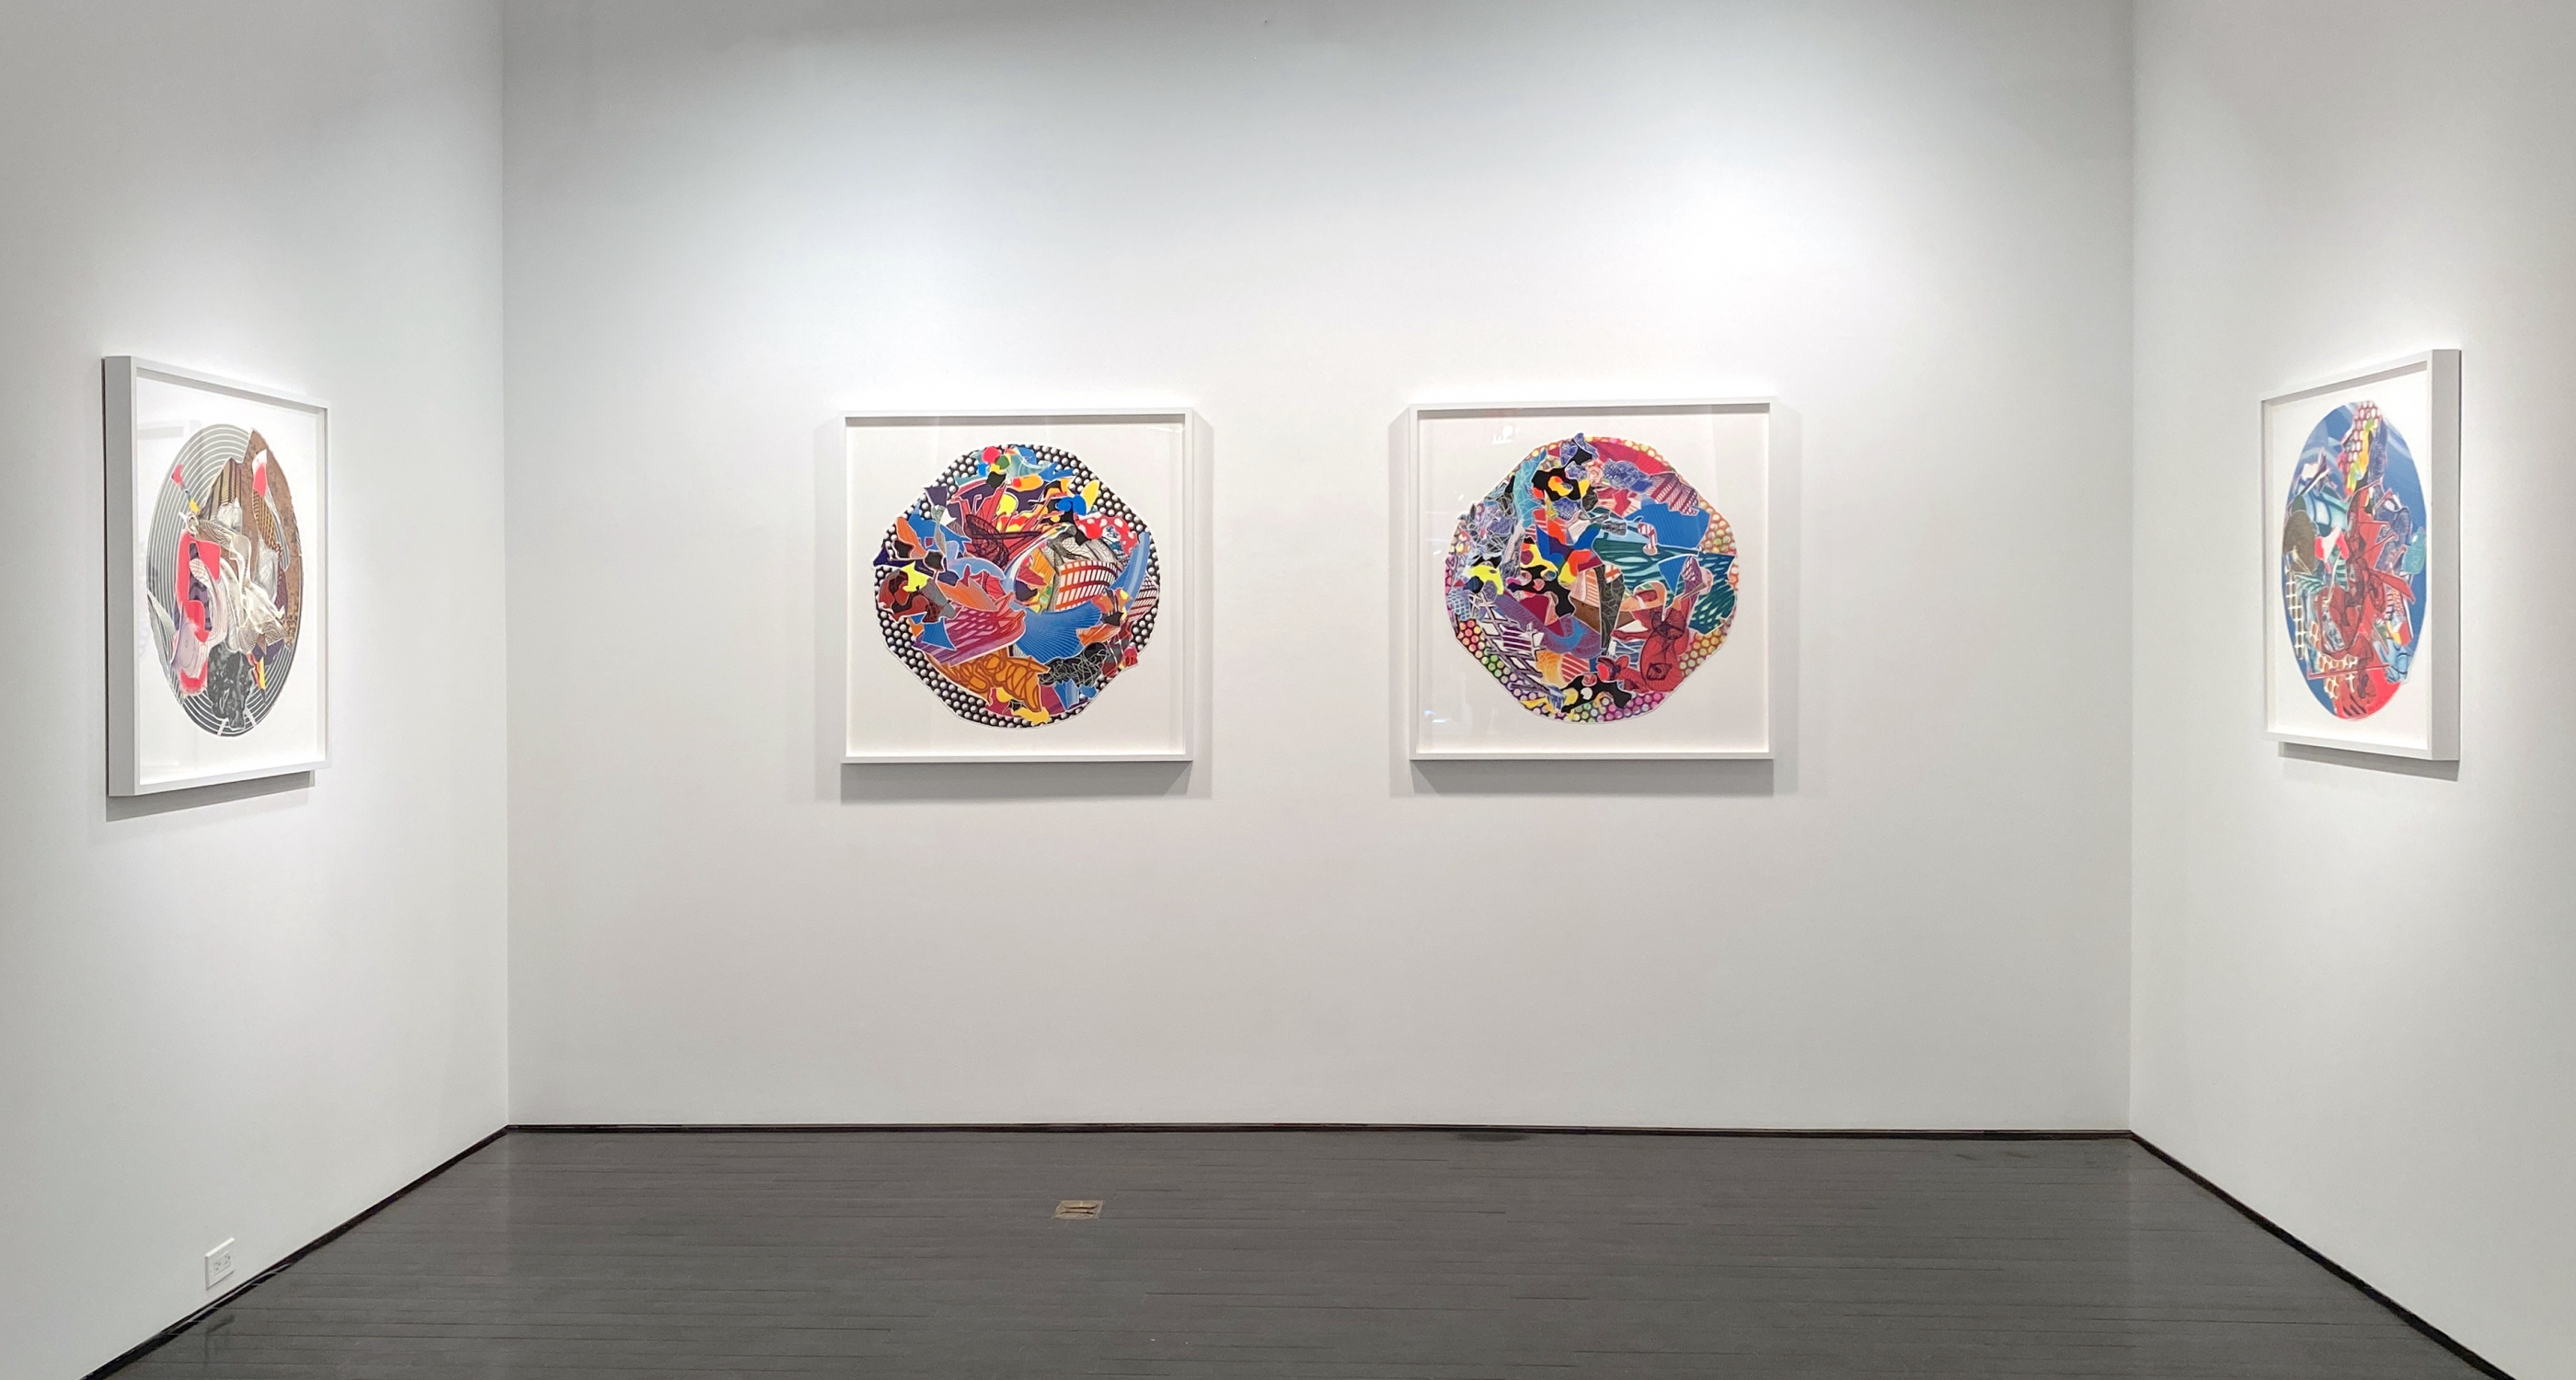 Frank Stella's Imaginary Places